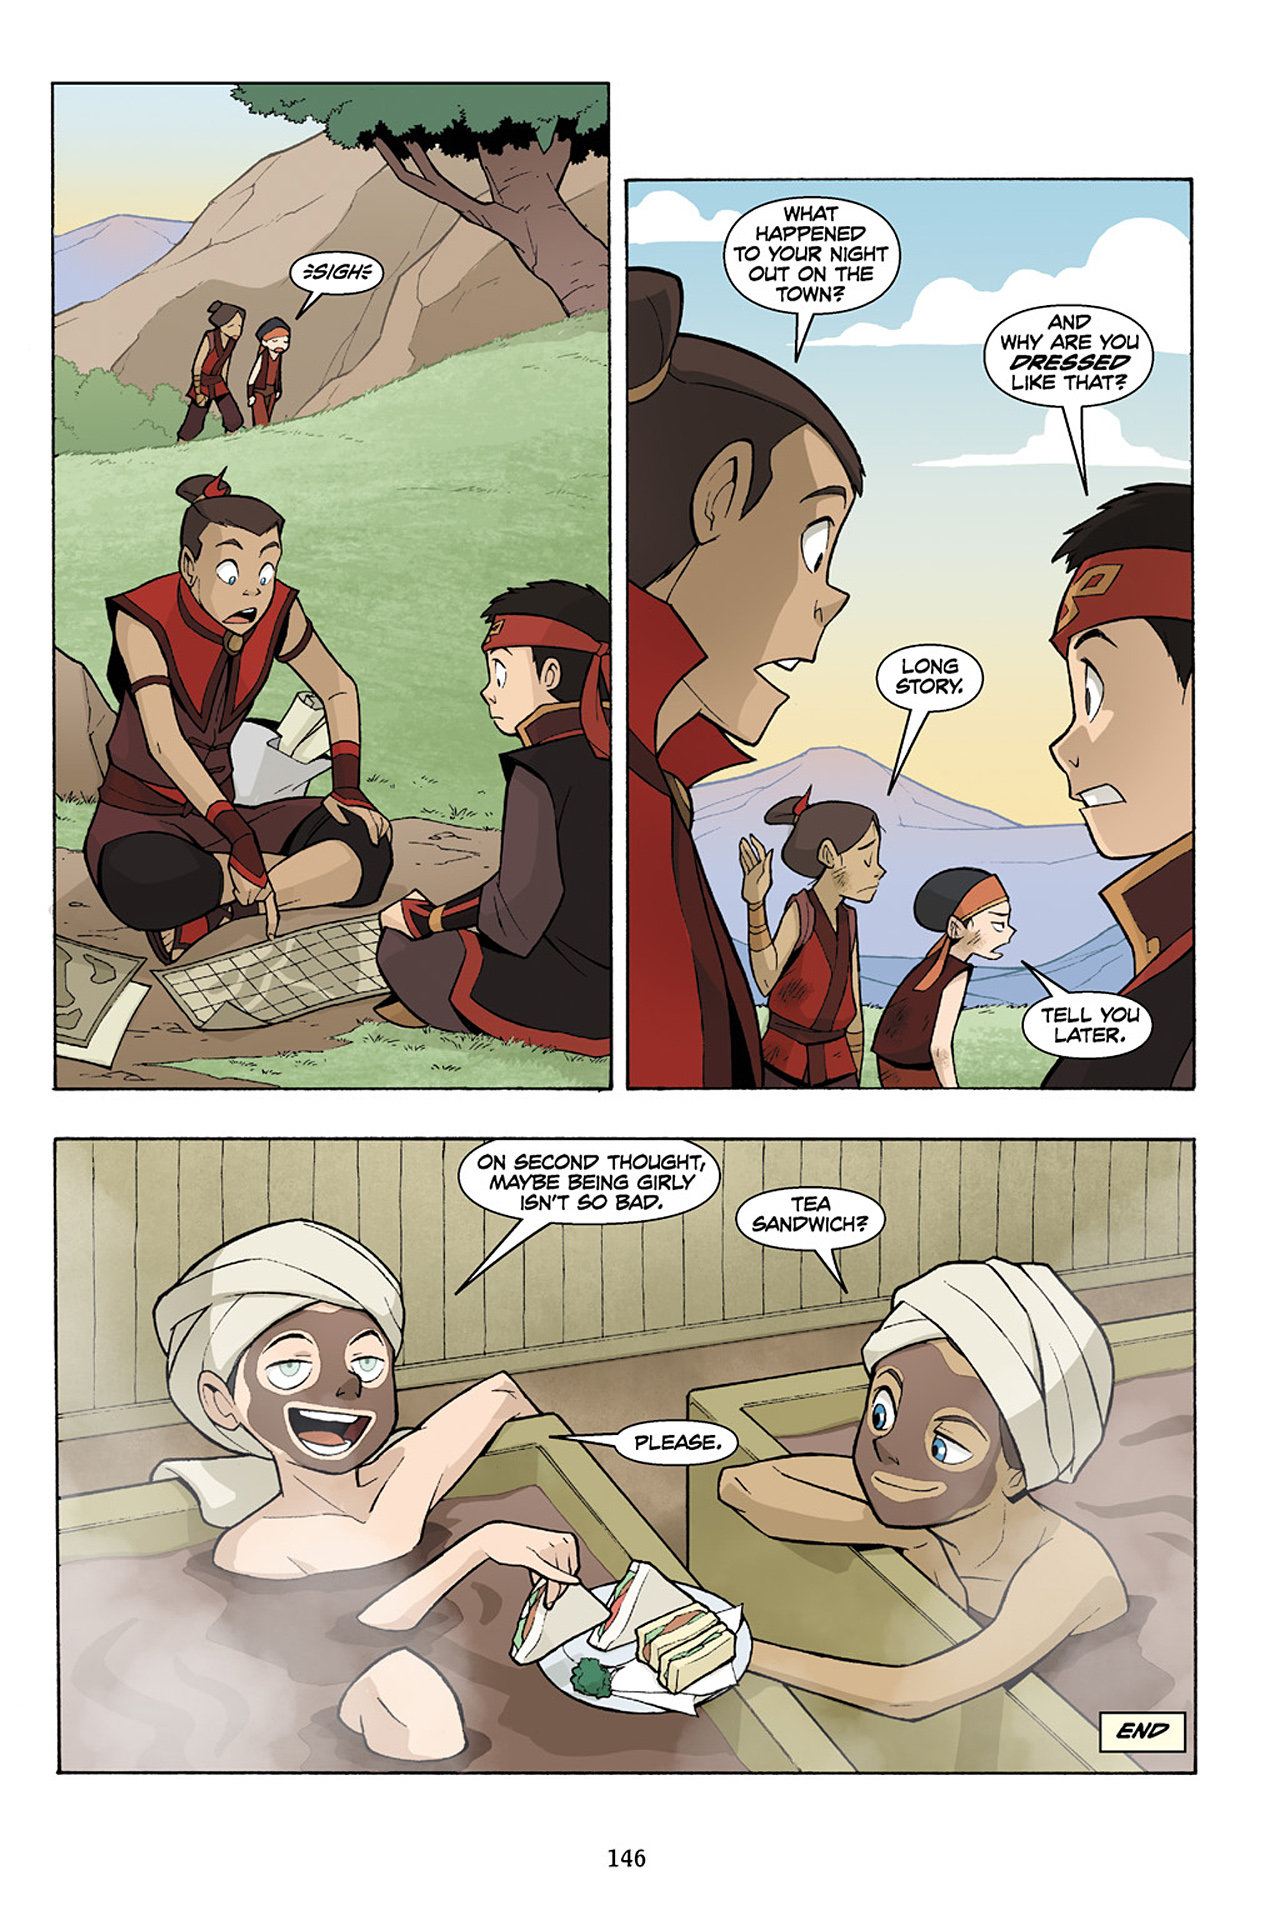 Nickelodeon Avatar: The Last Airbender - The Lost Adventures chap full pic 147